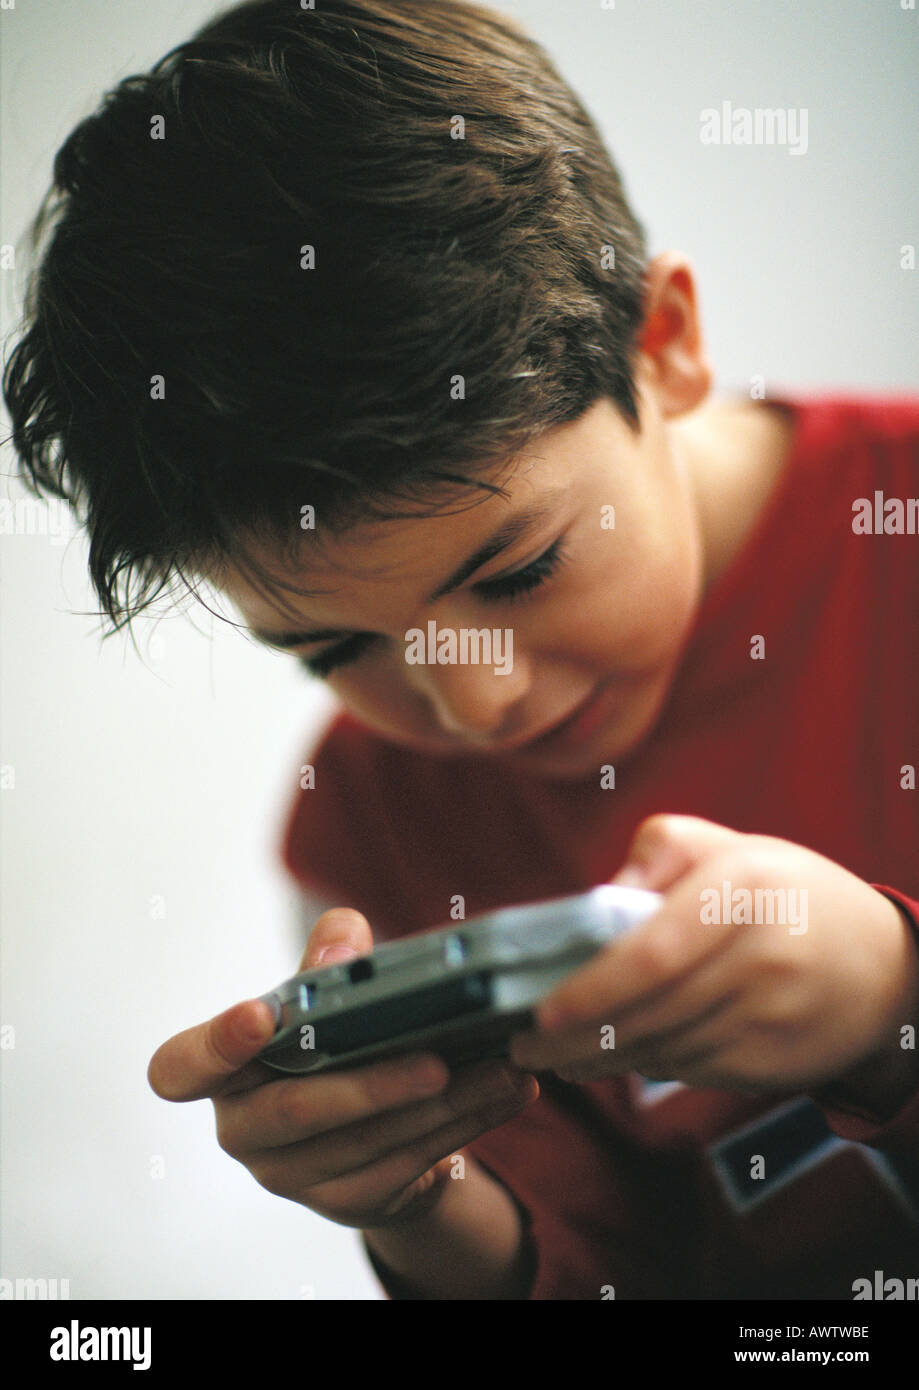 Young boy playing video game, close up Stock Photo